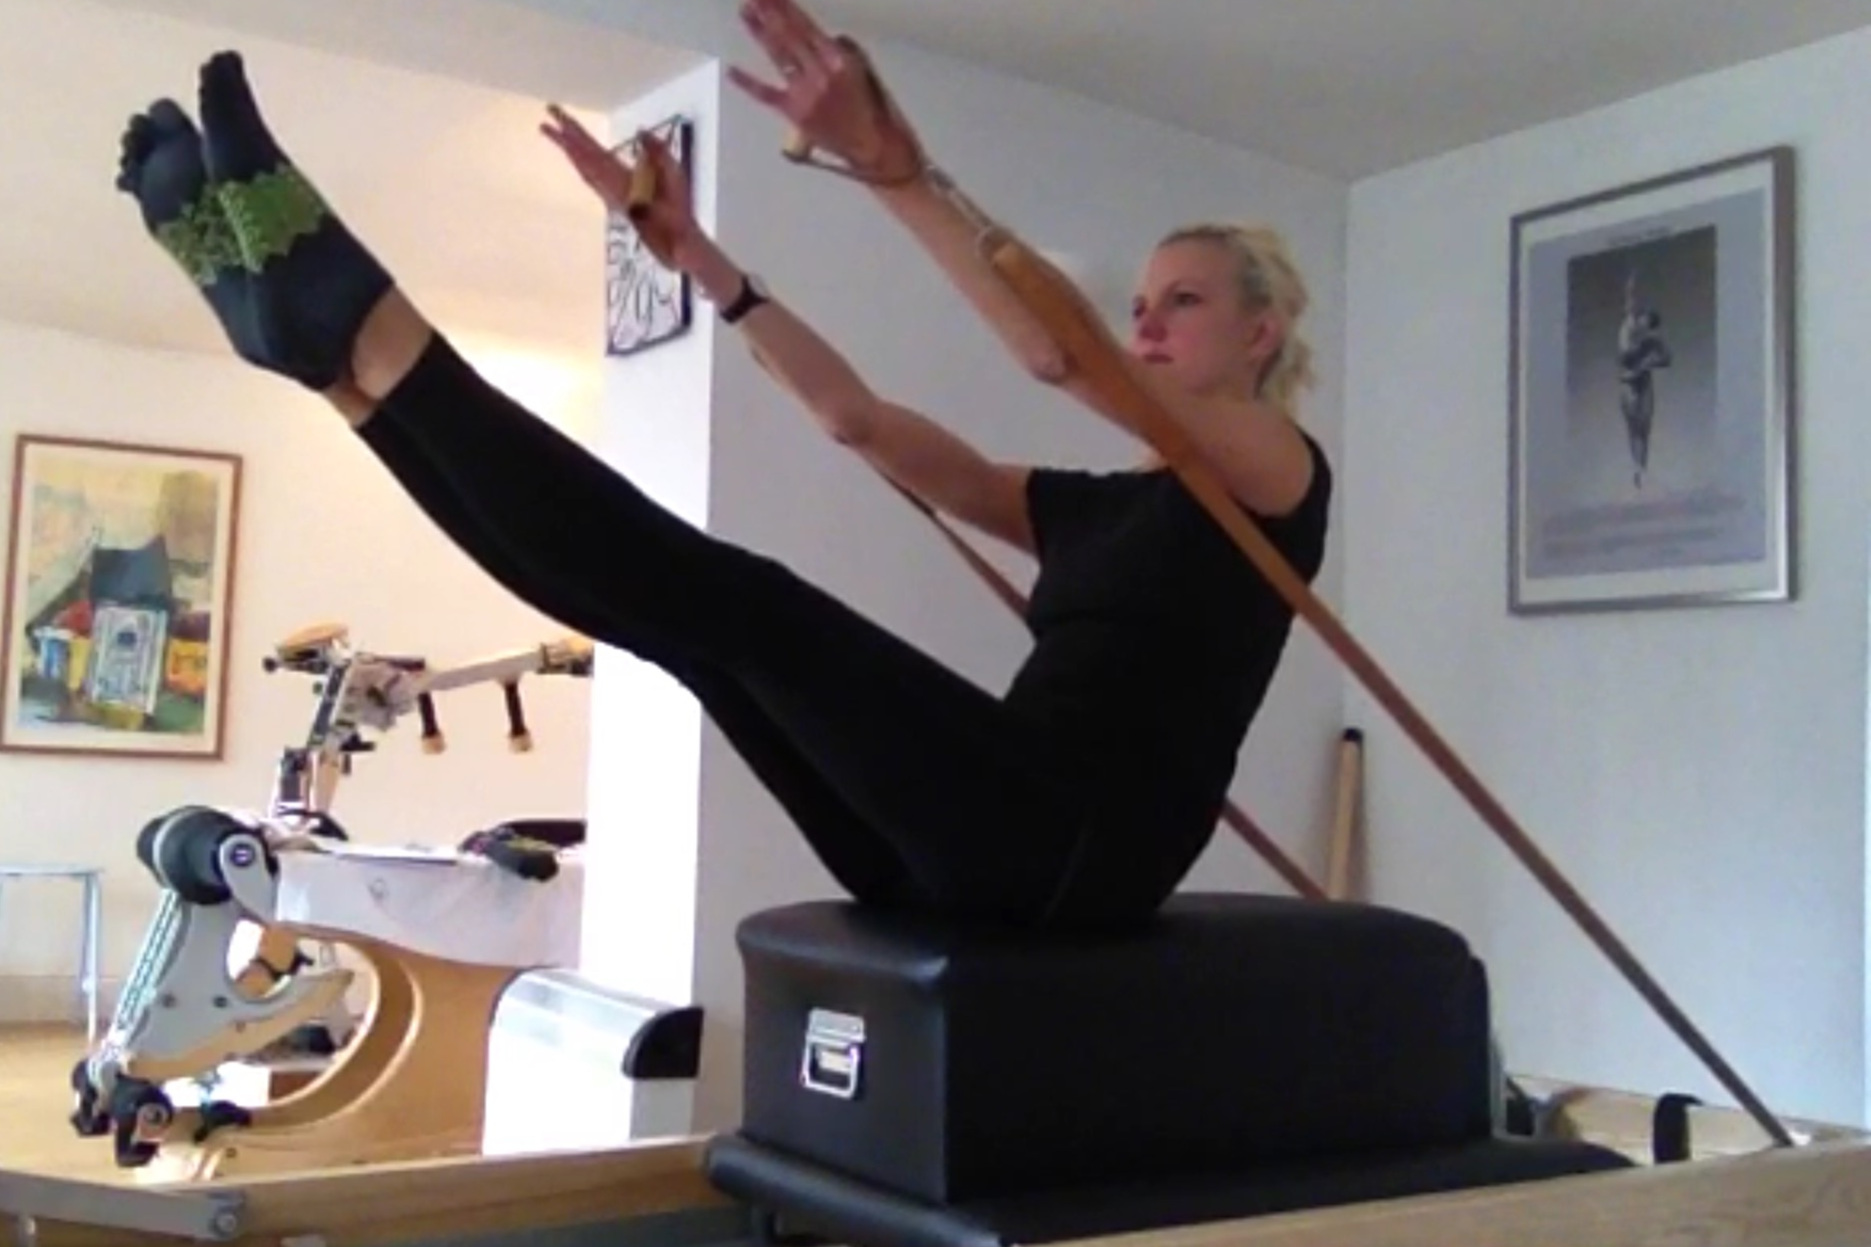 One to one Sessions - One to One Classical studio Pilates, is what makes the difference, Find your reach and the connection that can be hard to find on the mat. The studio equipment will bring it all together. A studio session will be tailored to you and your needs. Email Rikke@lovingPilatesuk.com